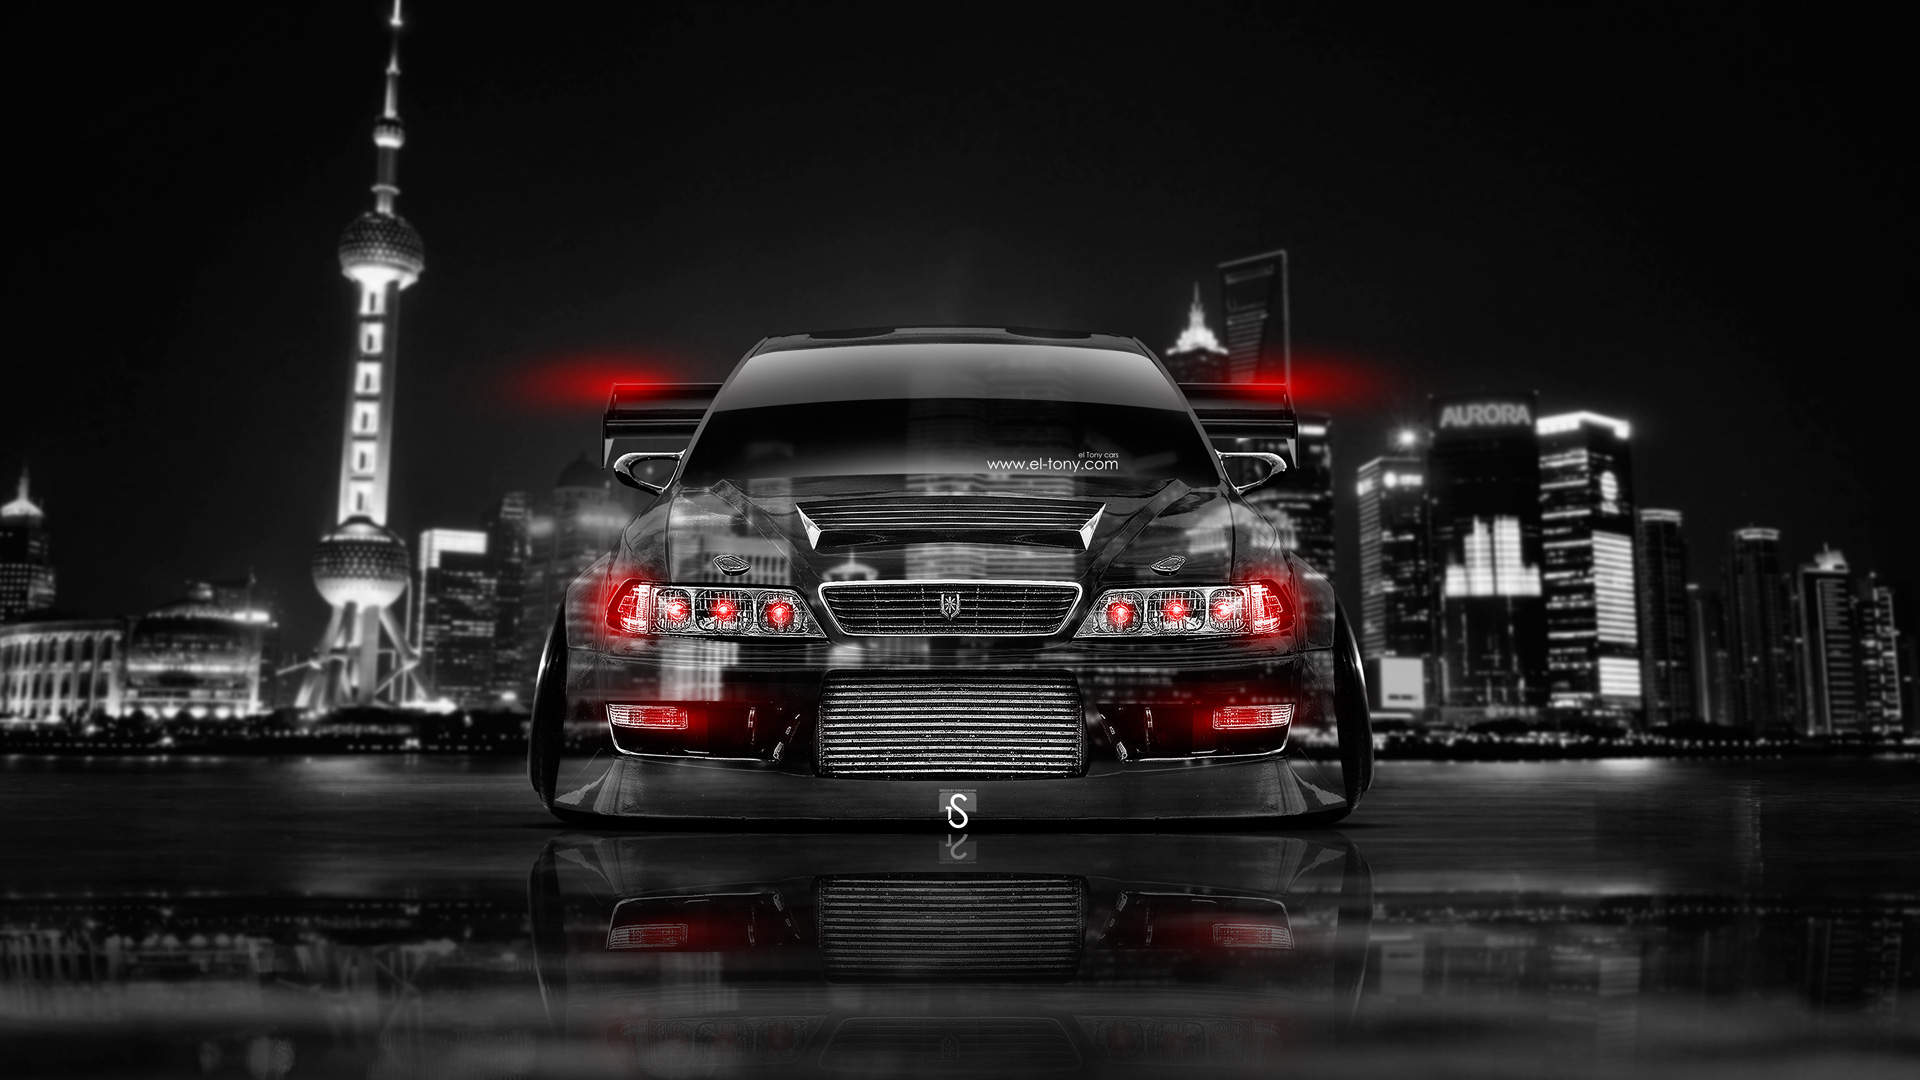 Exceptionnel Toyota Mark 2 JZX100 Tuning JDM Front Crystal  ...